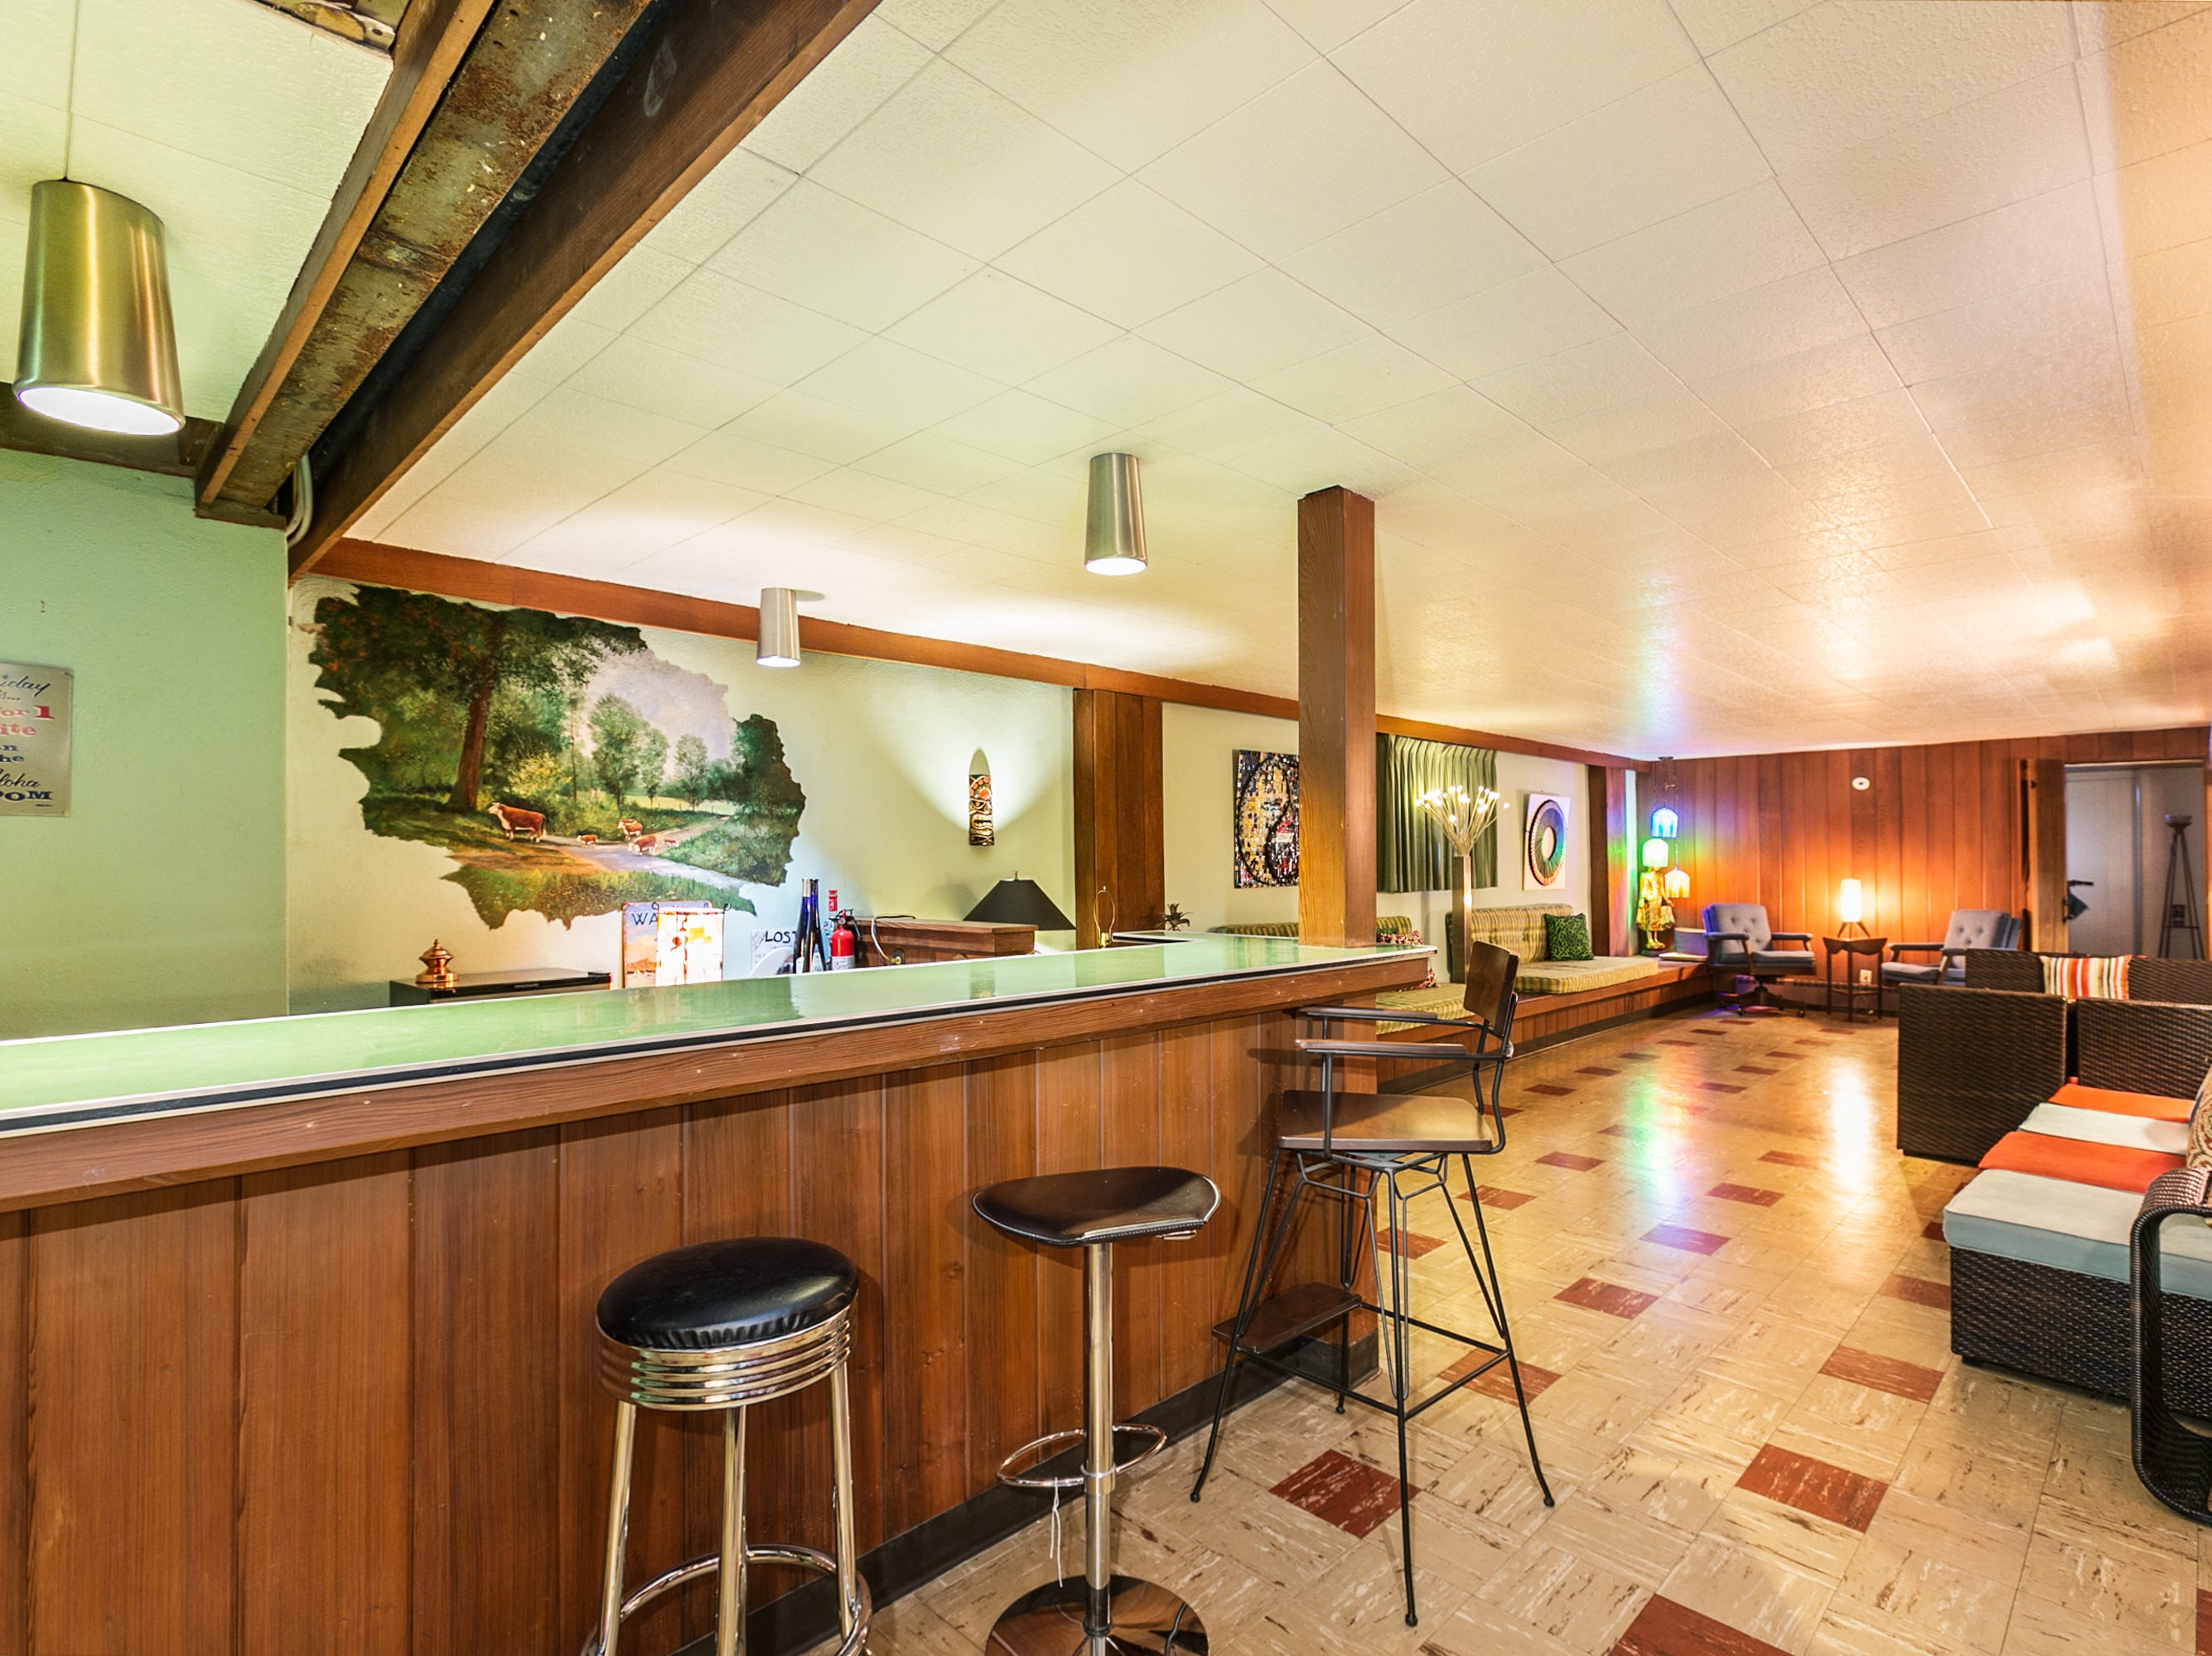 The downstairs bar also is frozen in time, with boomerang Formica on the counter and original tile and built-ins. The mural on the wall was completed in 1960 by C. Summey. Kyaw says they wouldn't dream of doing away with it. As an artist himself, he has far too much respect for it.